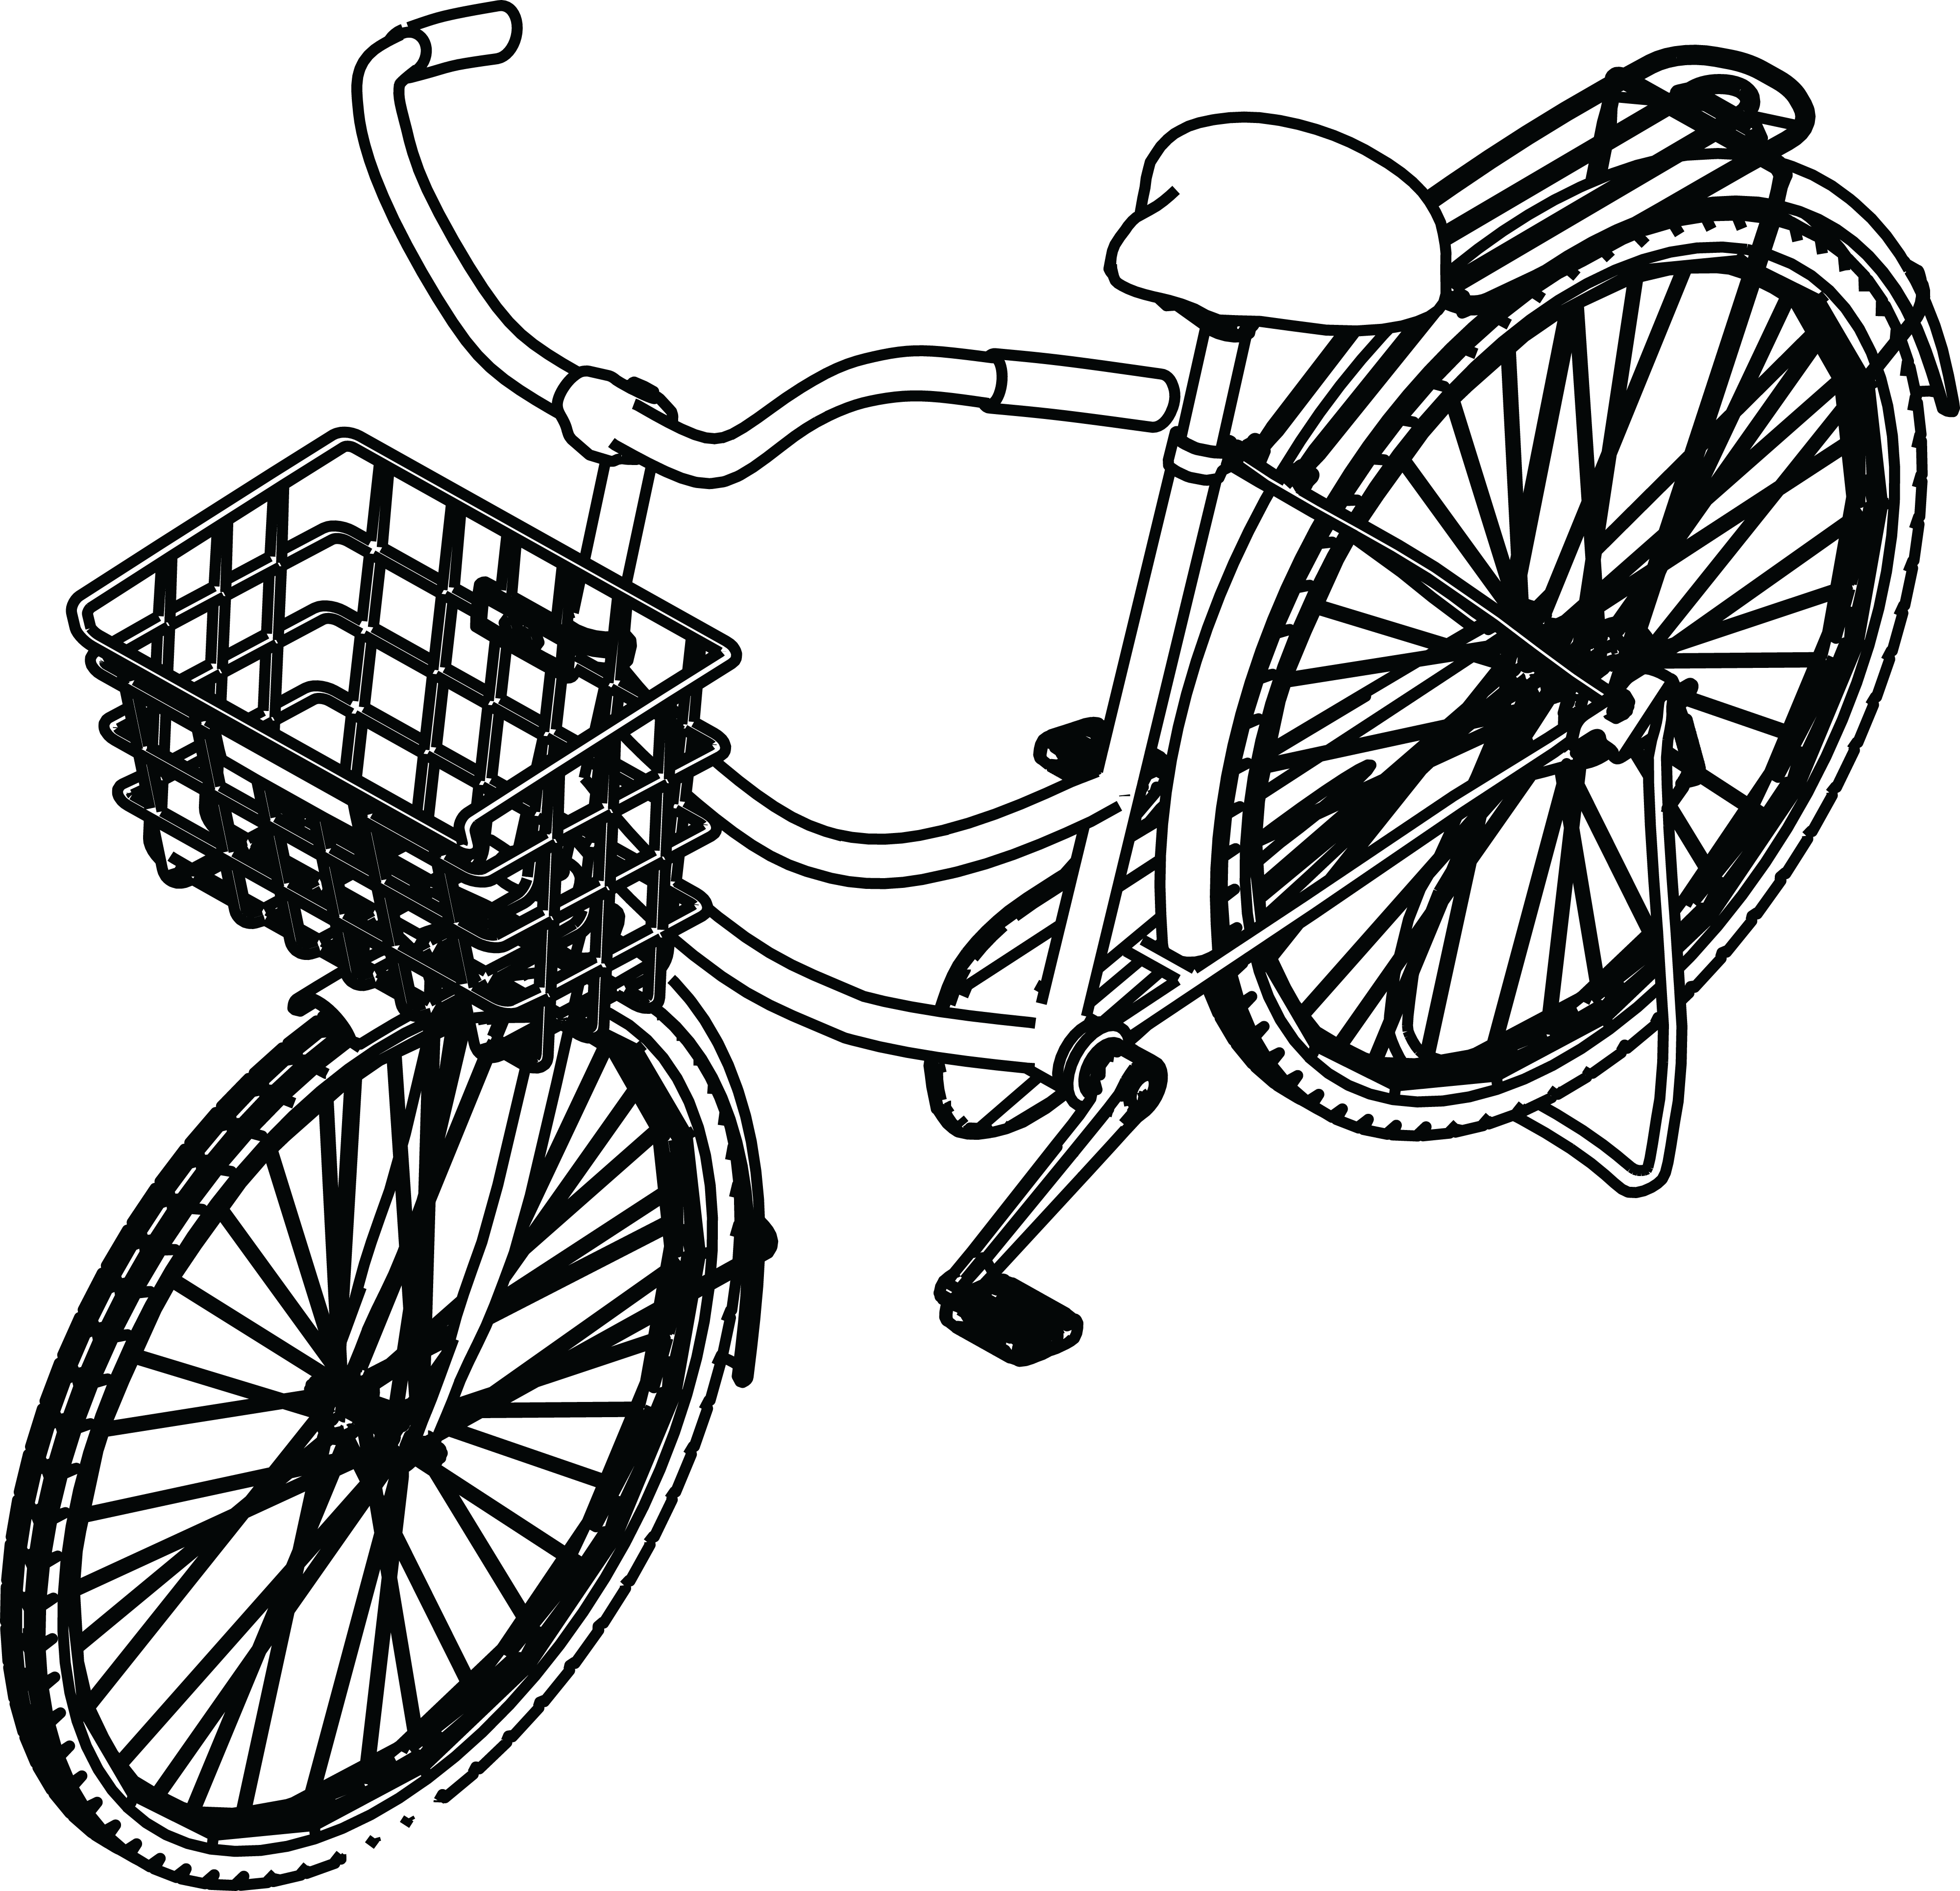 Free Clipart: JPG, PNG, EPS, AI, SVG, CDR